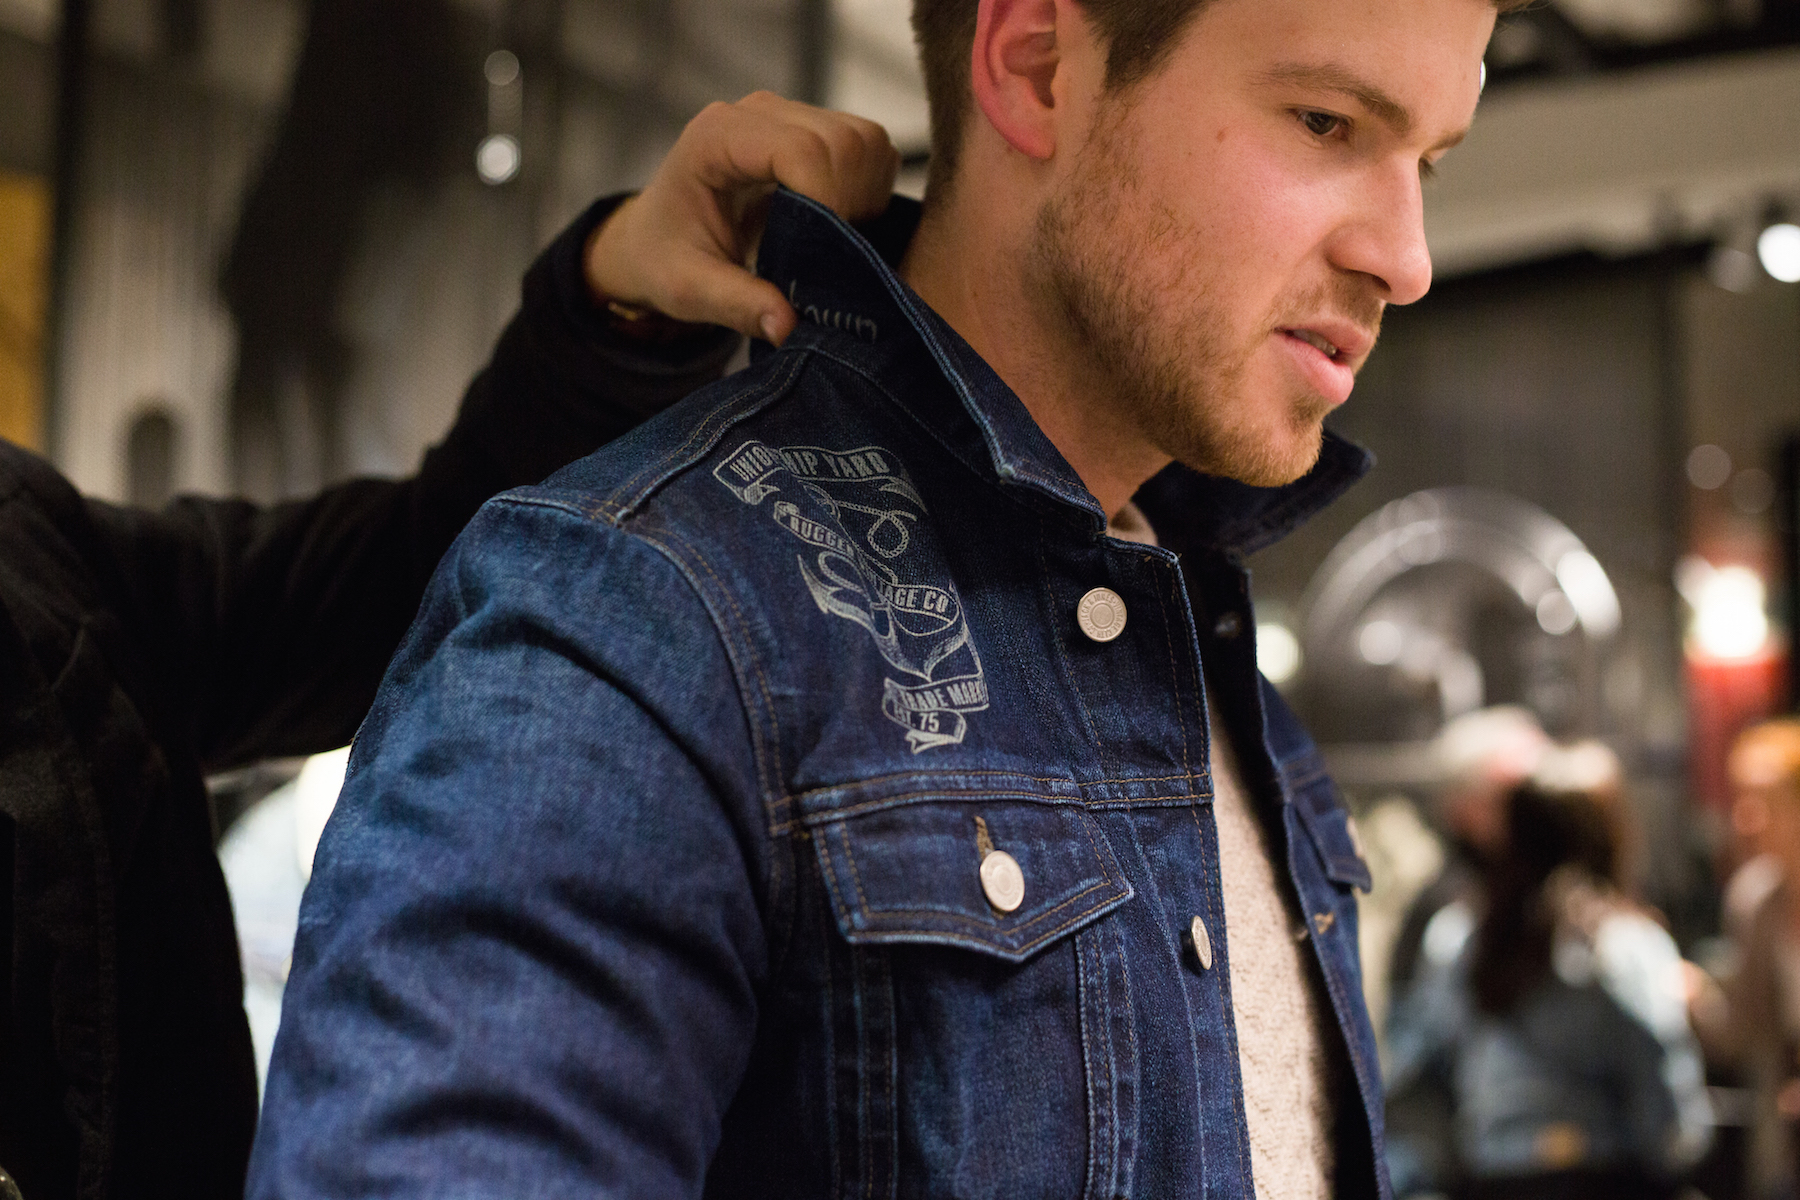 jack-and-jones-jeans-intelligence-studio-salzburg-opening_meanwhile-in-awesometown_austrian-mens-fashion-and-lifestyleblog7